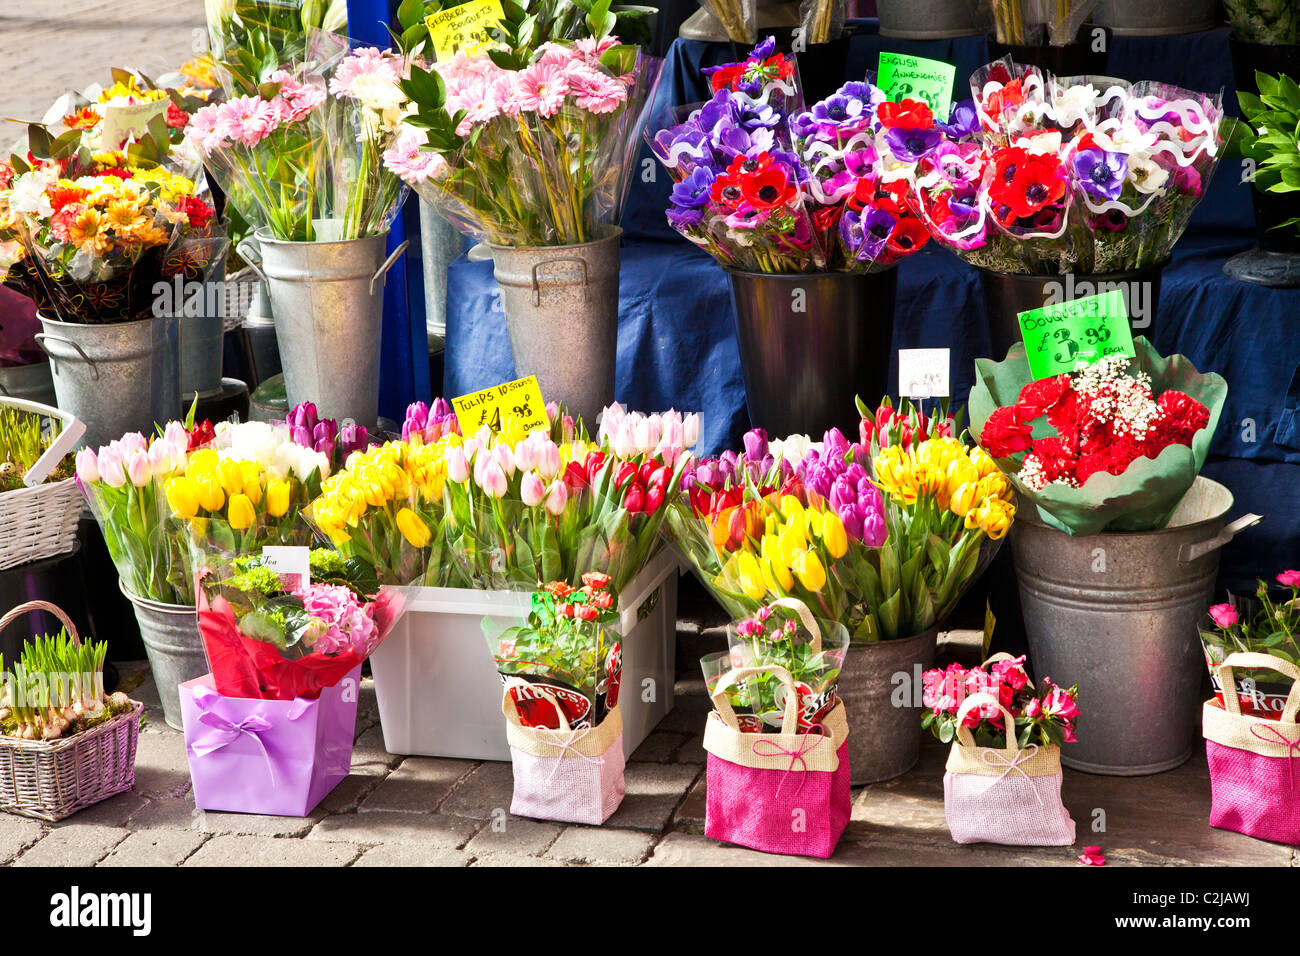 Floral display of cut bunches and bouquets of spring flowers outside ...